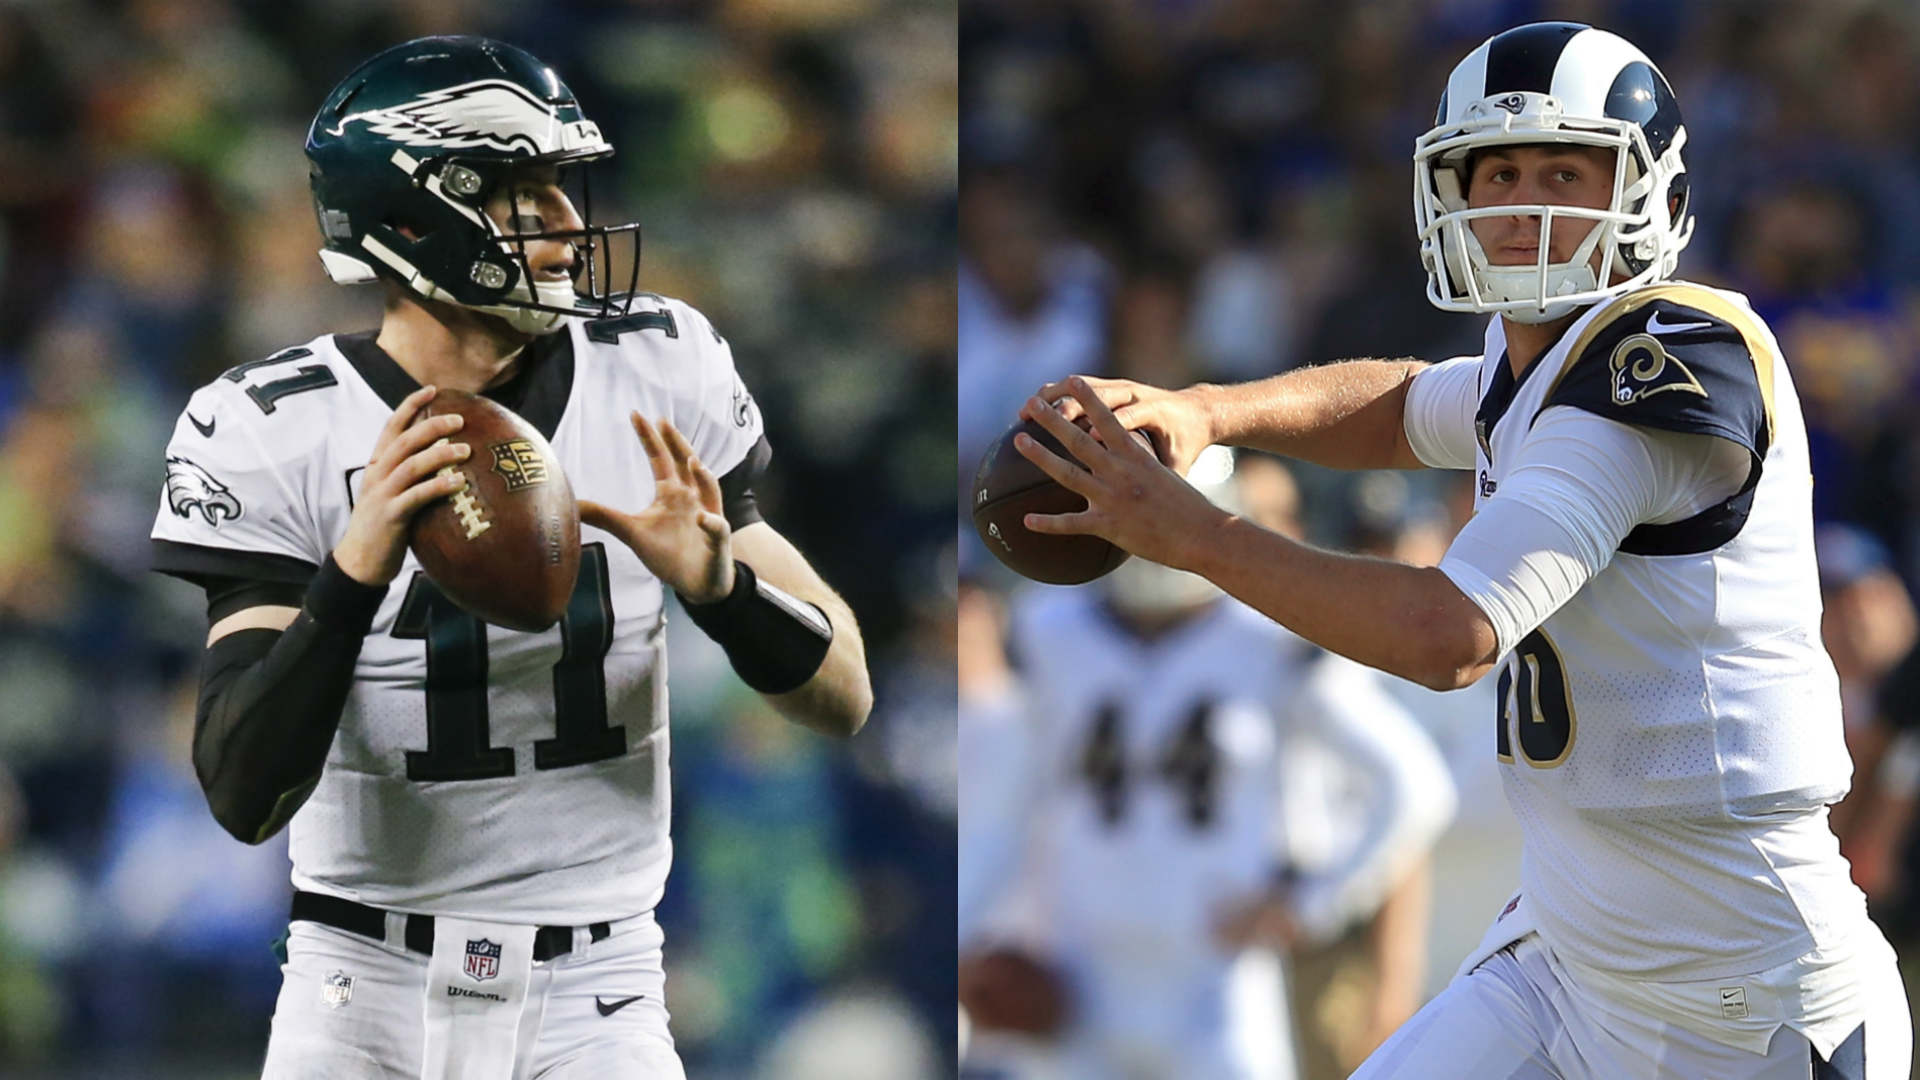 Jared Goff, Carson Wentz 'excited' to play each other for first time